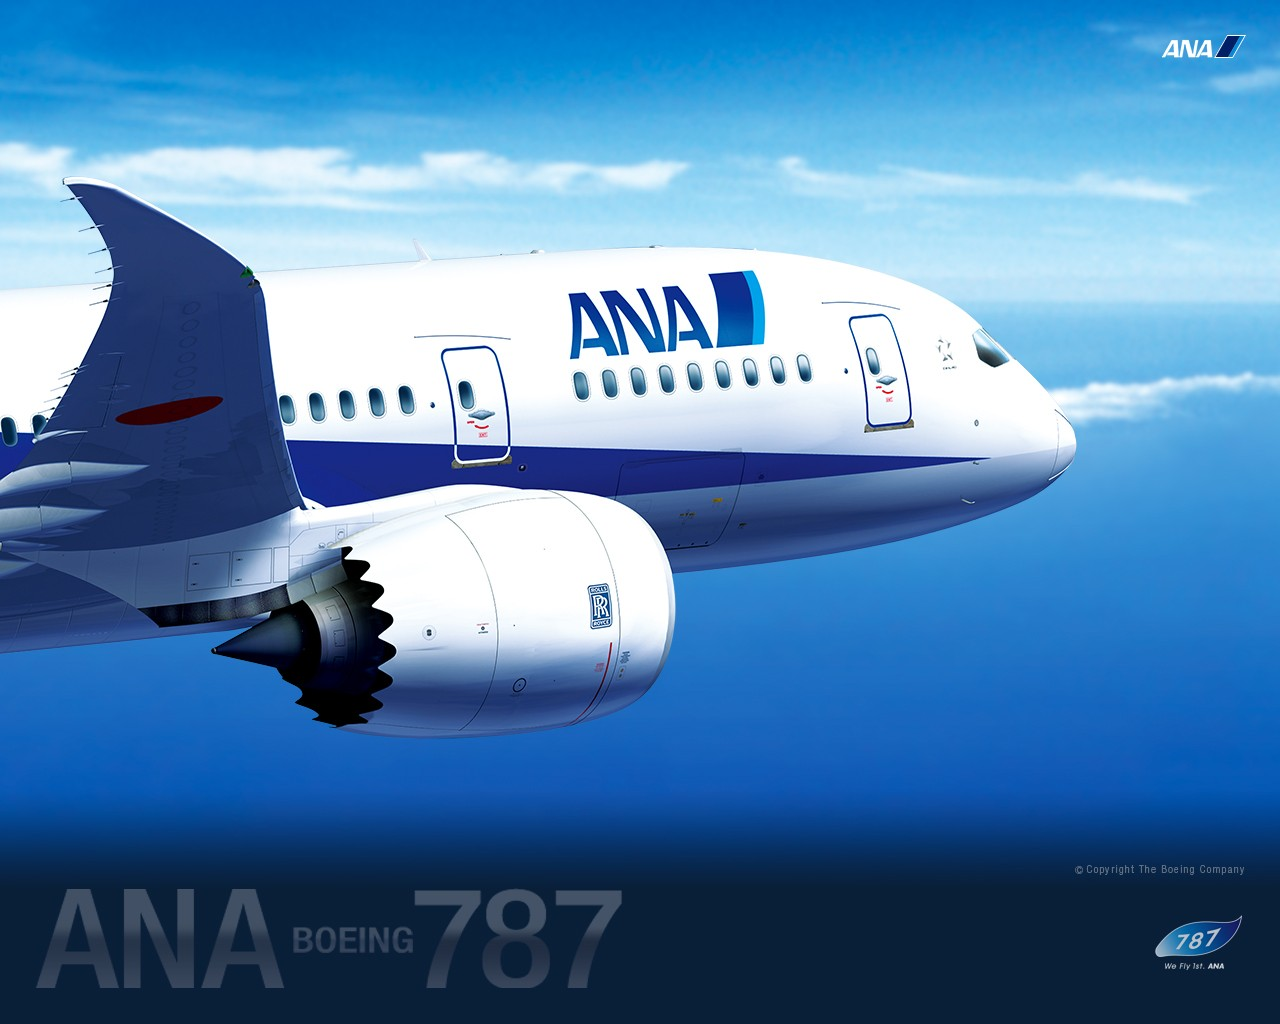 ANA All Nippon Airways Boeing Dreamliner wallpaper 30514